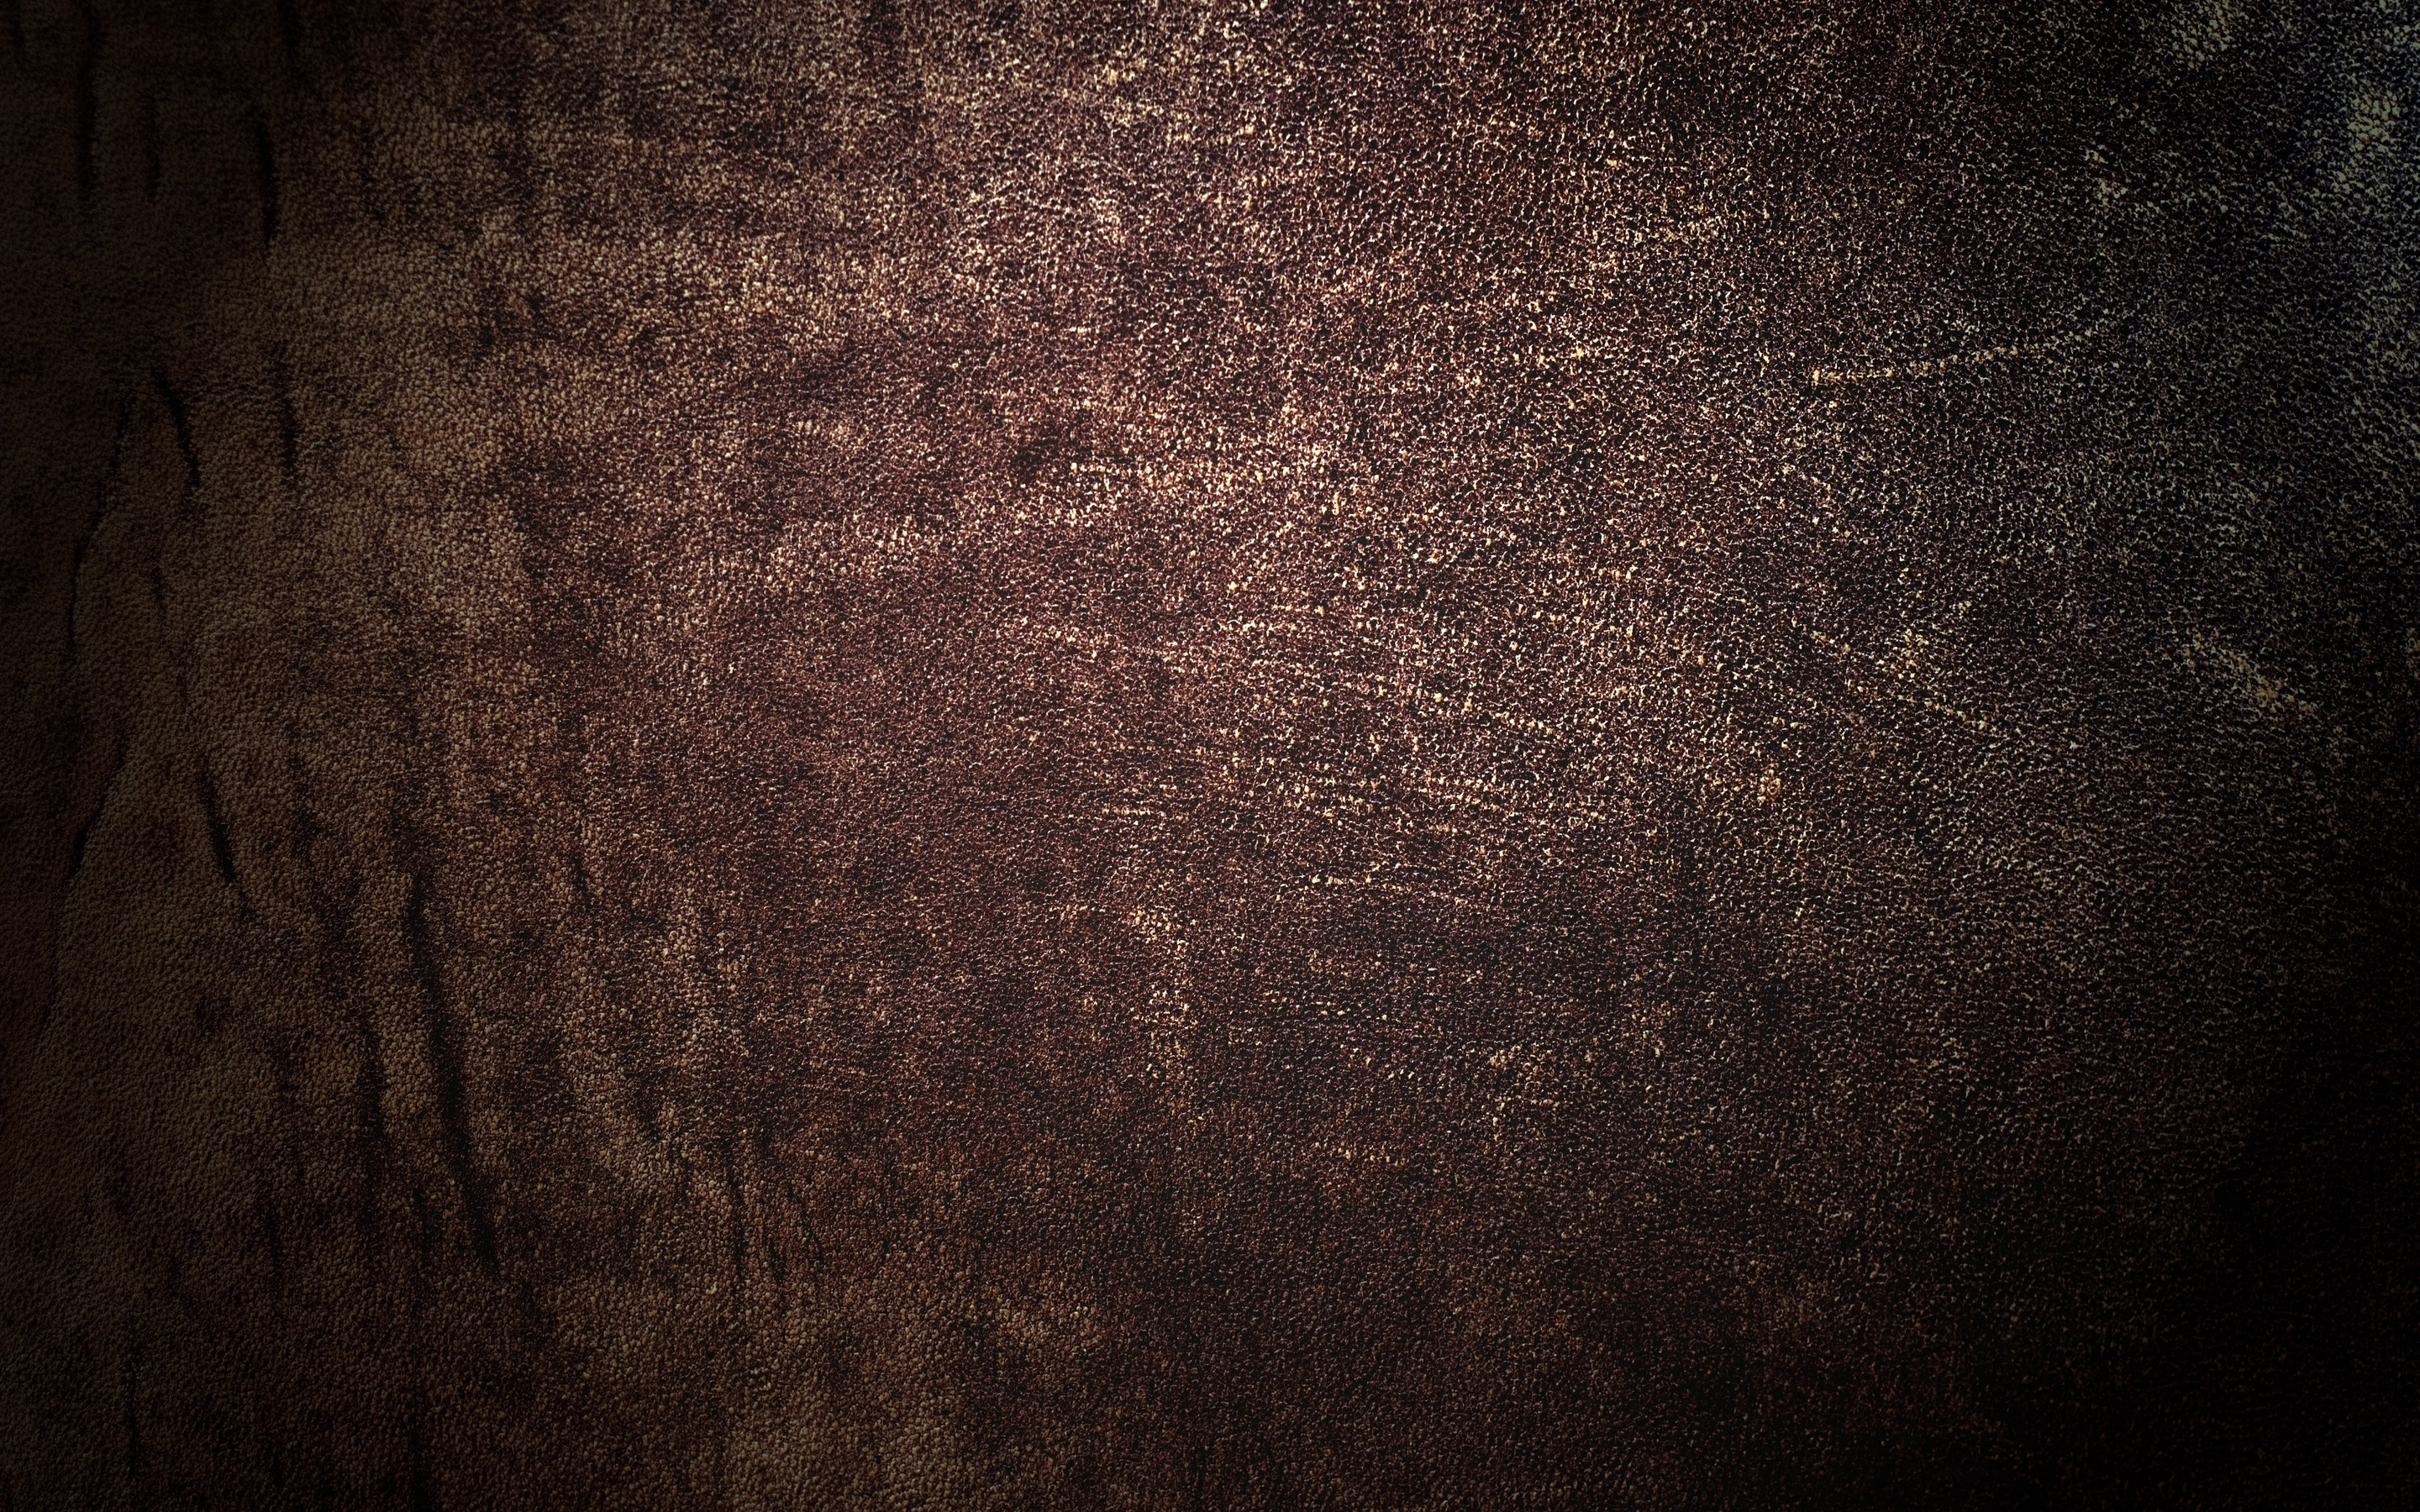 wallpapers and texture on - photo #10